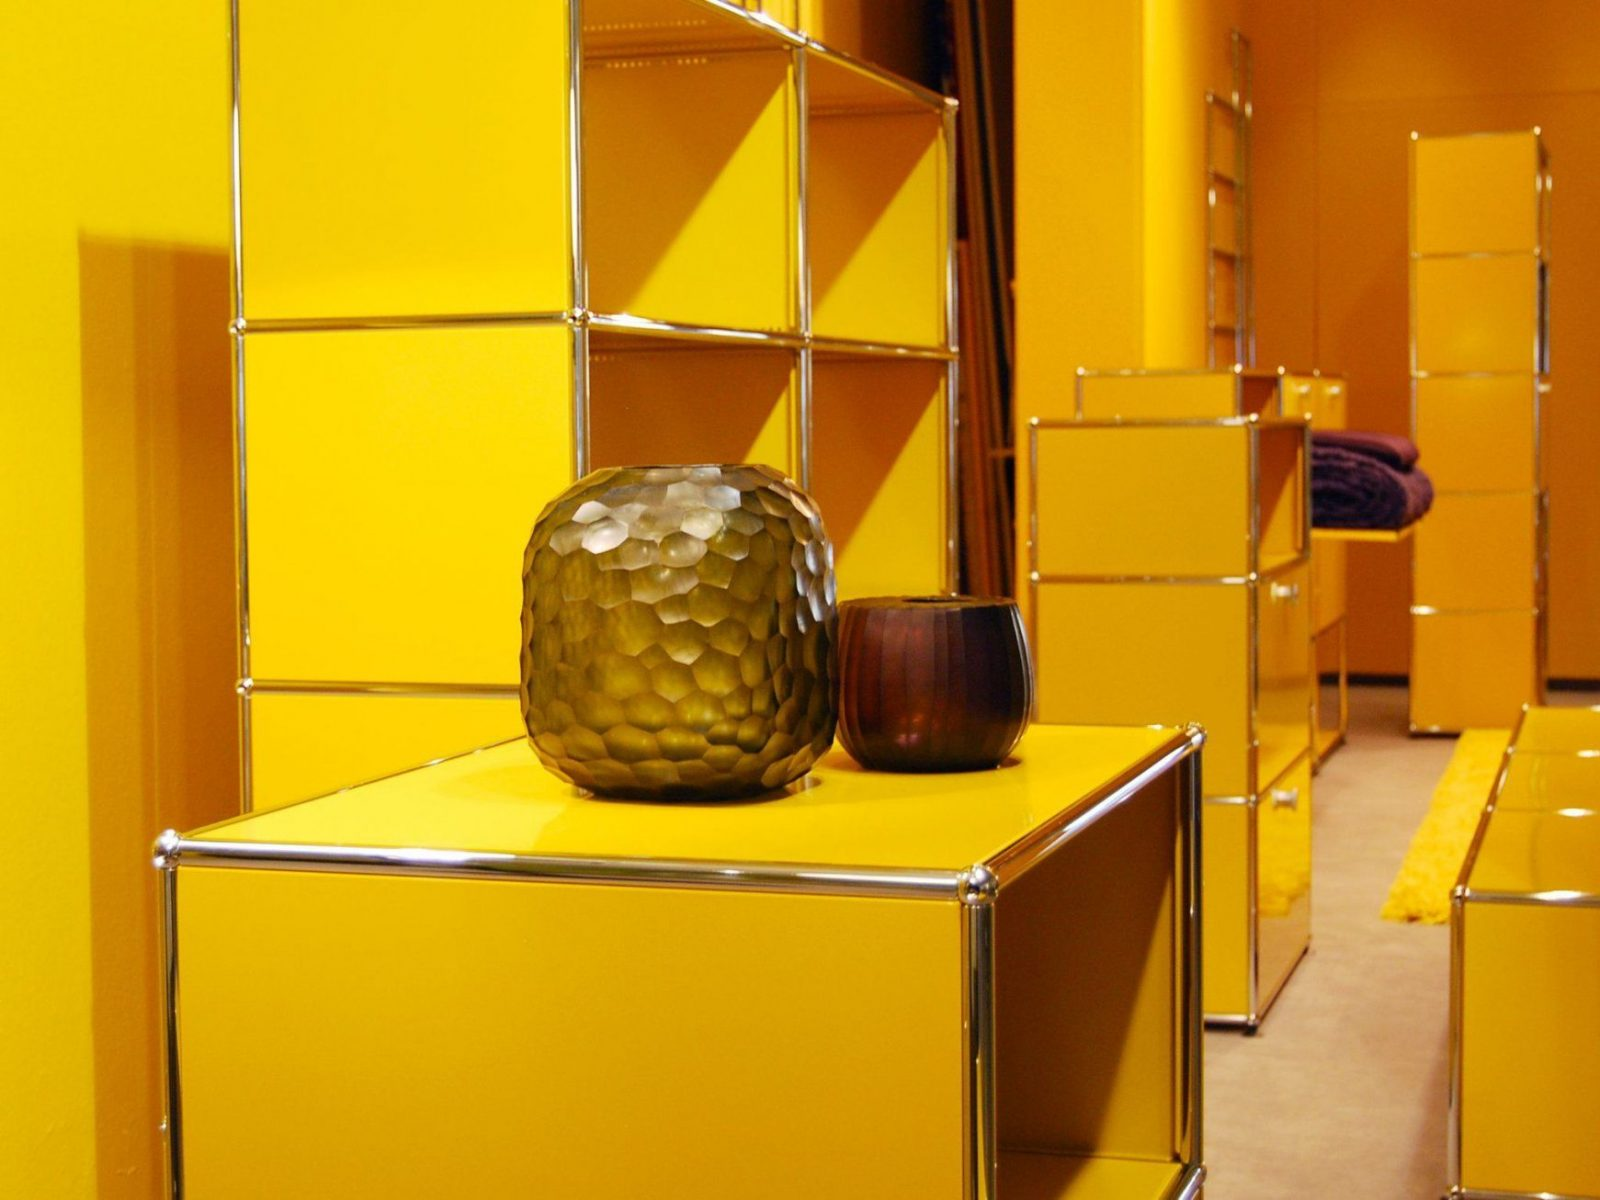 Usm Haller Modular Furniture In Golden Yellow Exhibition At Böhmler von Böhmler Im Tal München Photo